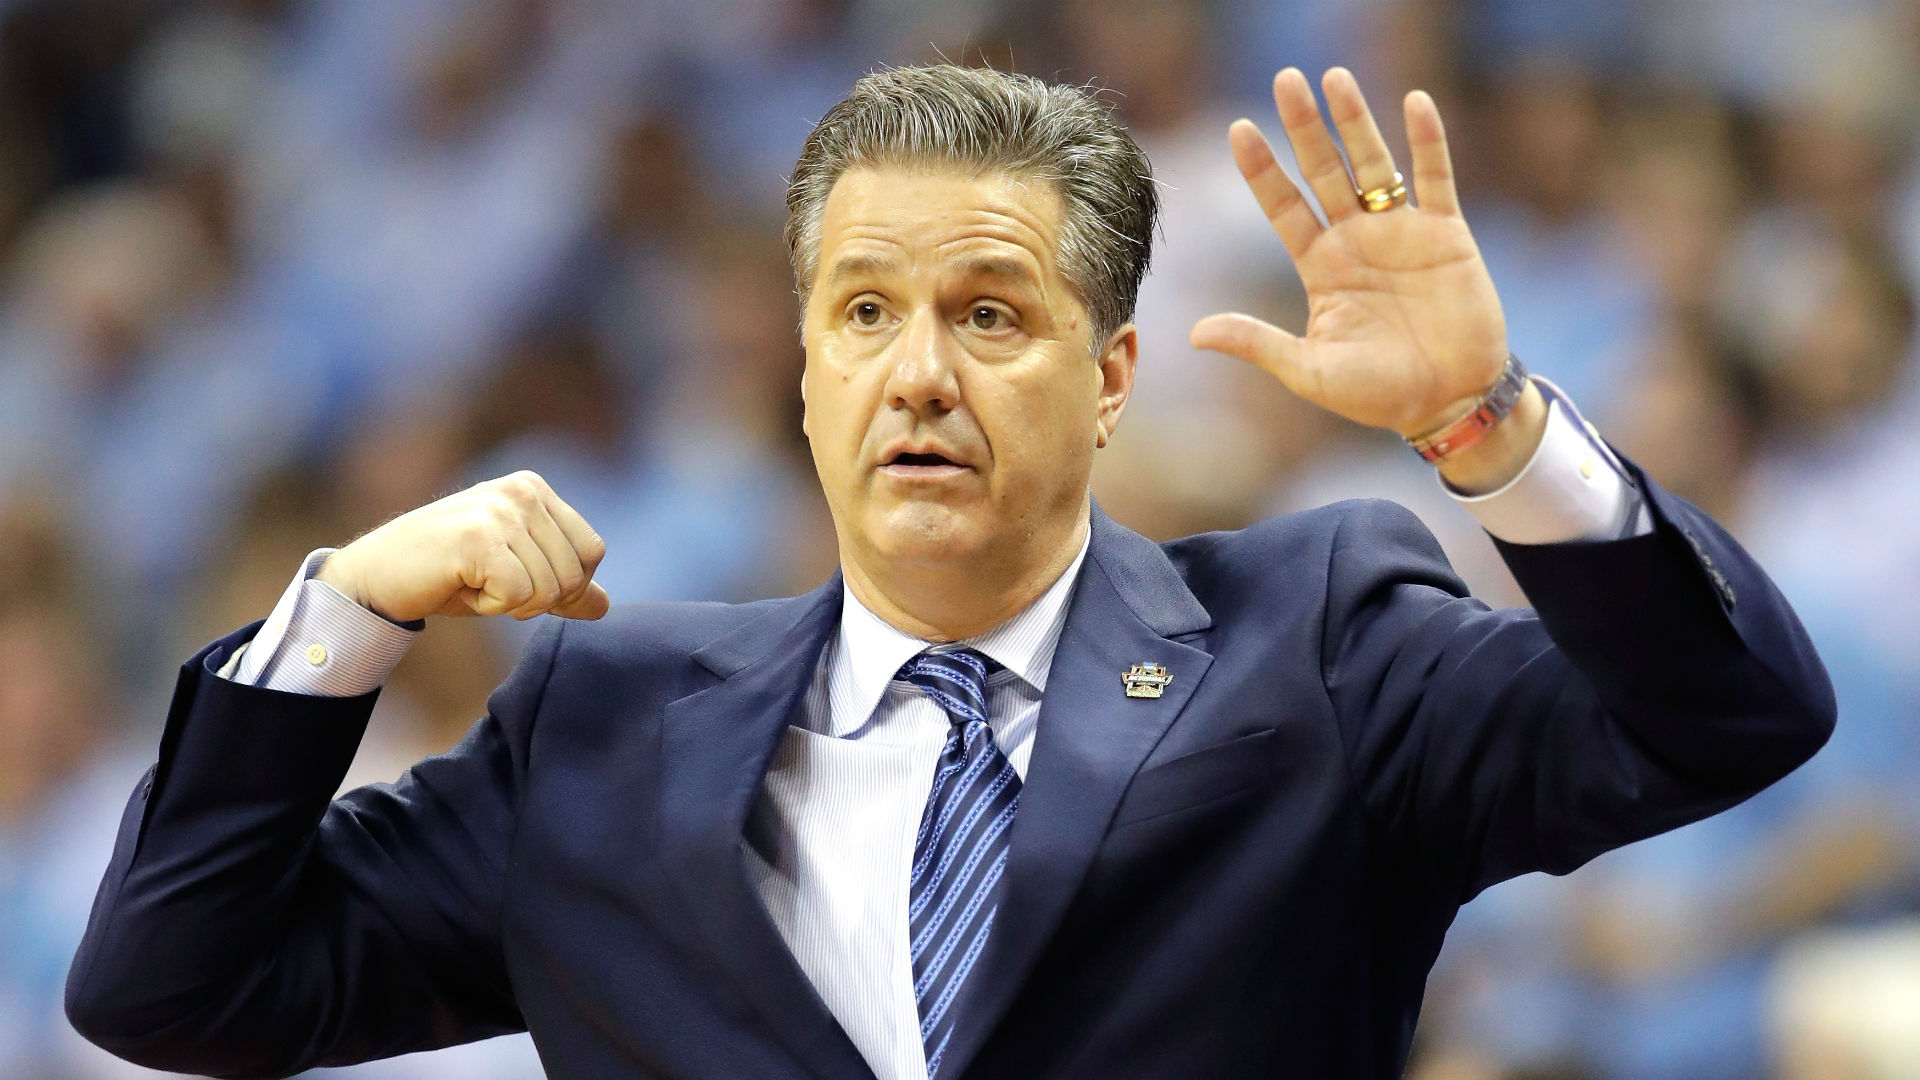 John Calipari leads U19 Team USA to first loss since 2011